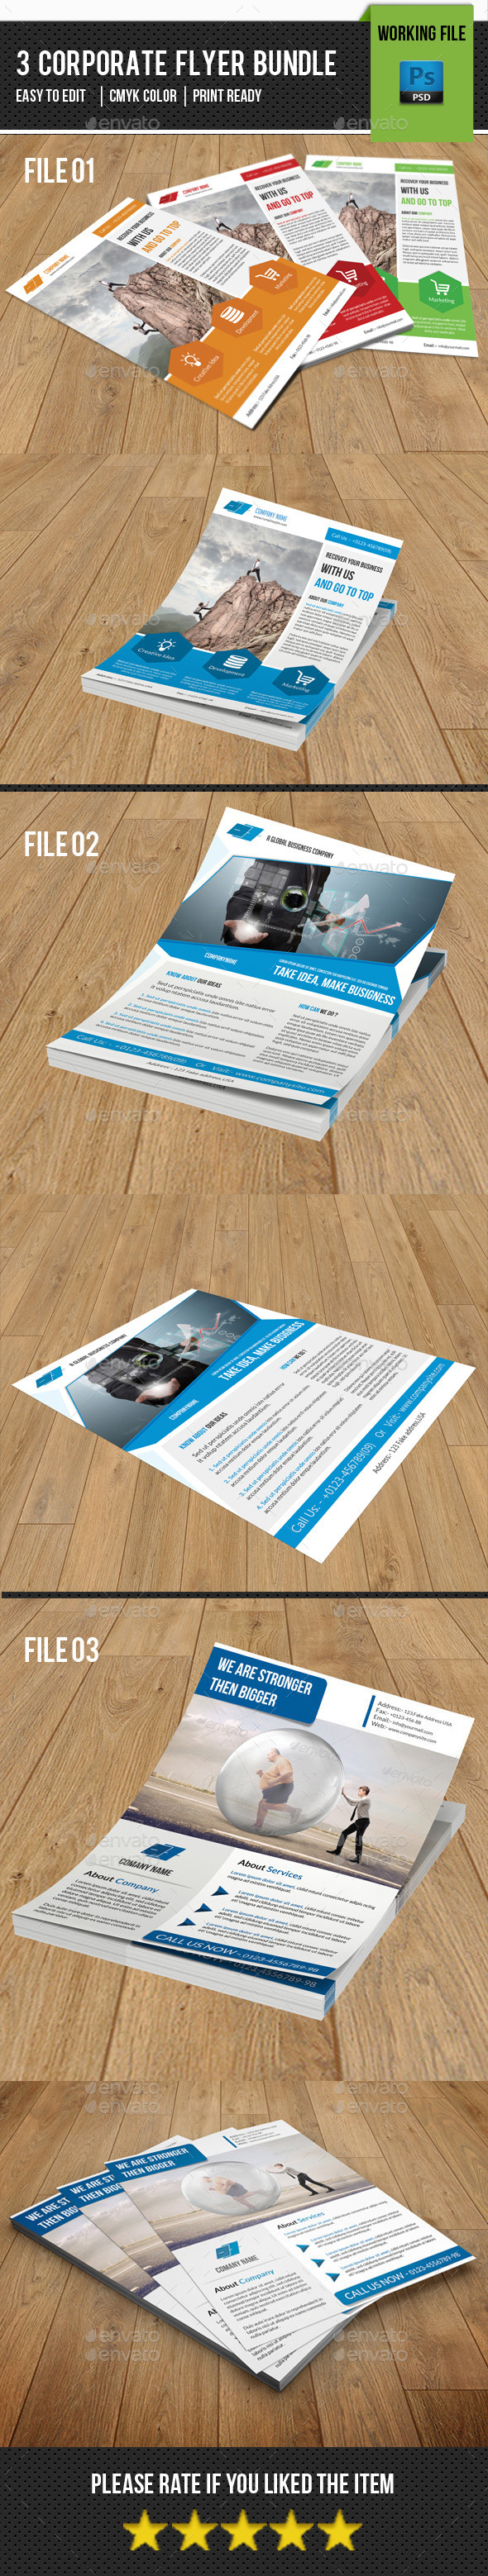 3 in 1 Corporate Flyer Bundle-V06 - Corporate Flyers